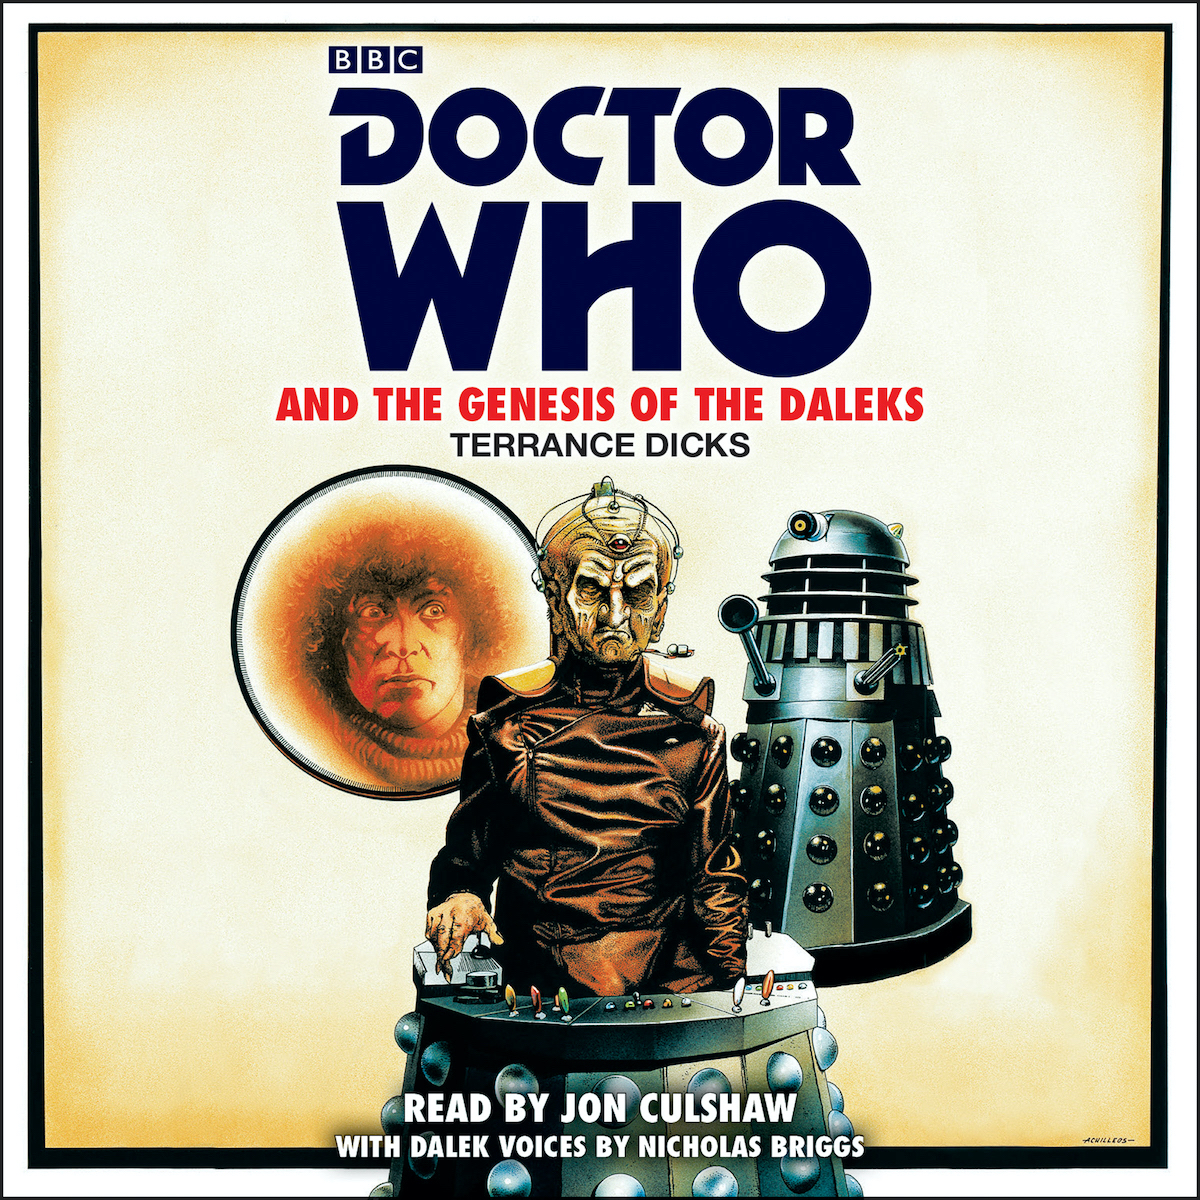 Doctor Who and the Genesis of the Daleks (novel reading)